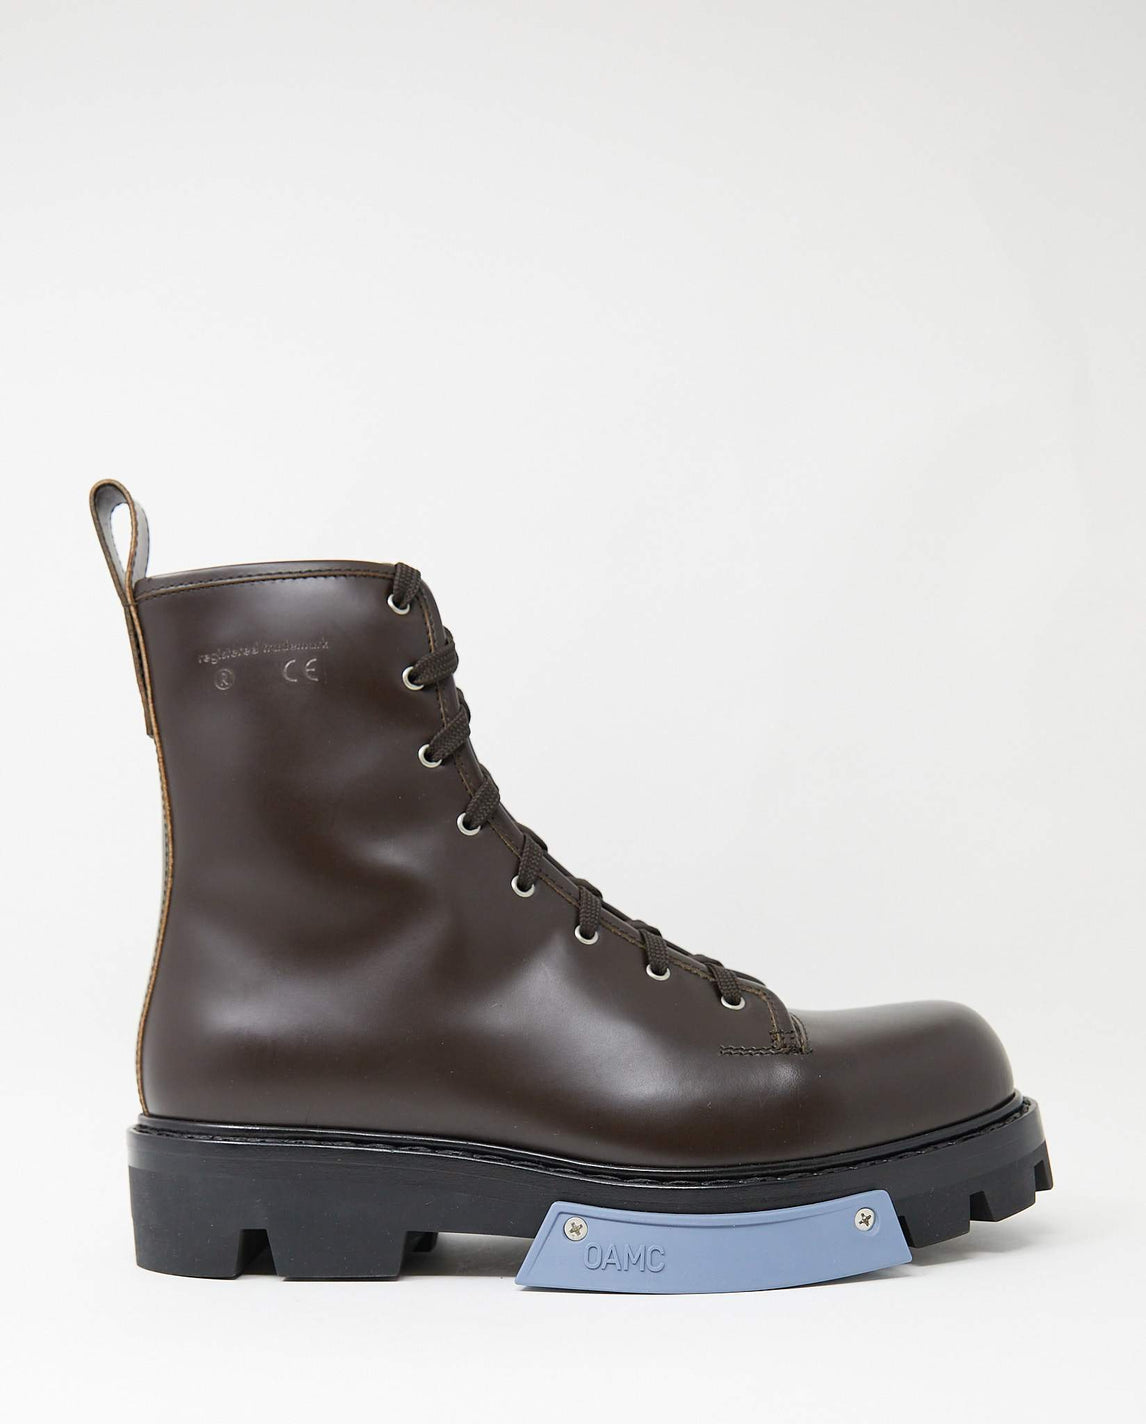 Exit Boot - Brown MENS OAMC